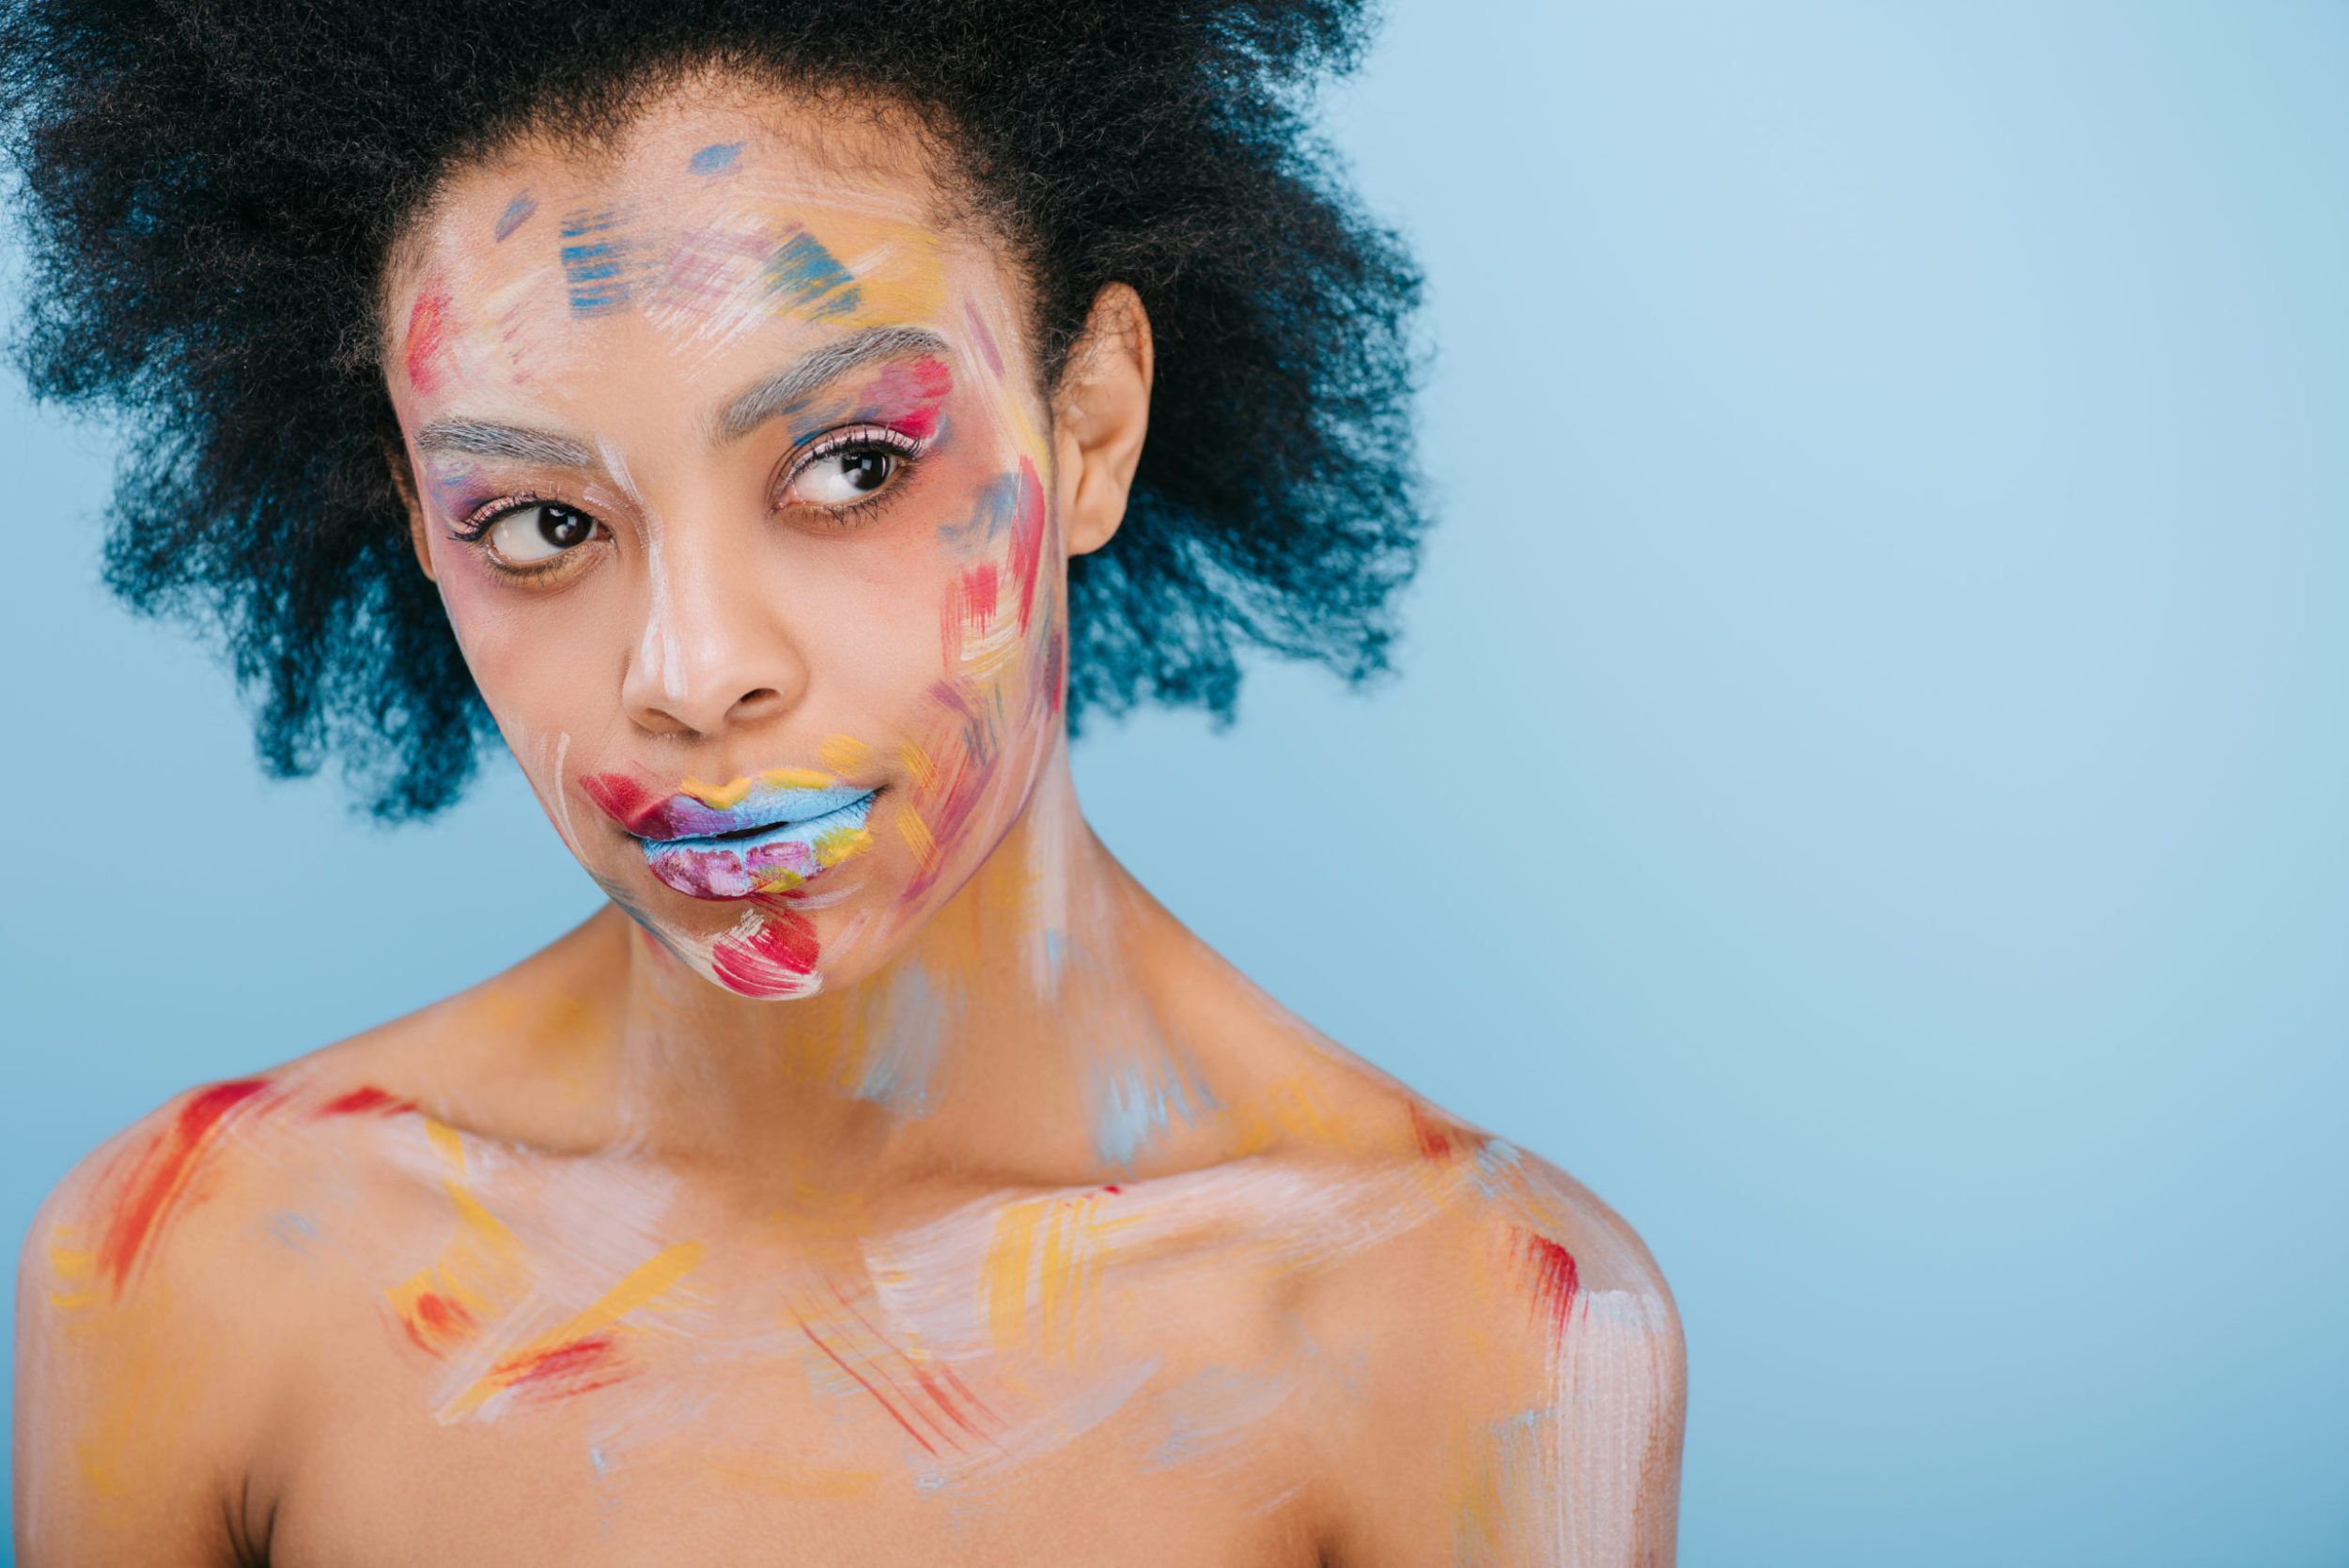 attractive young woman with paint strokes on face looking away isolated on blue